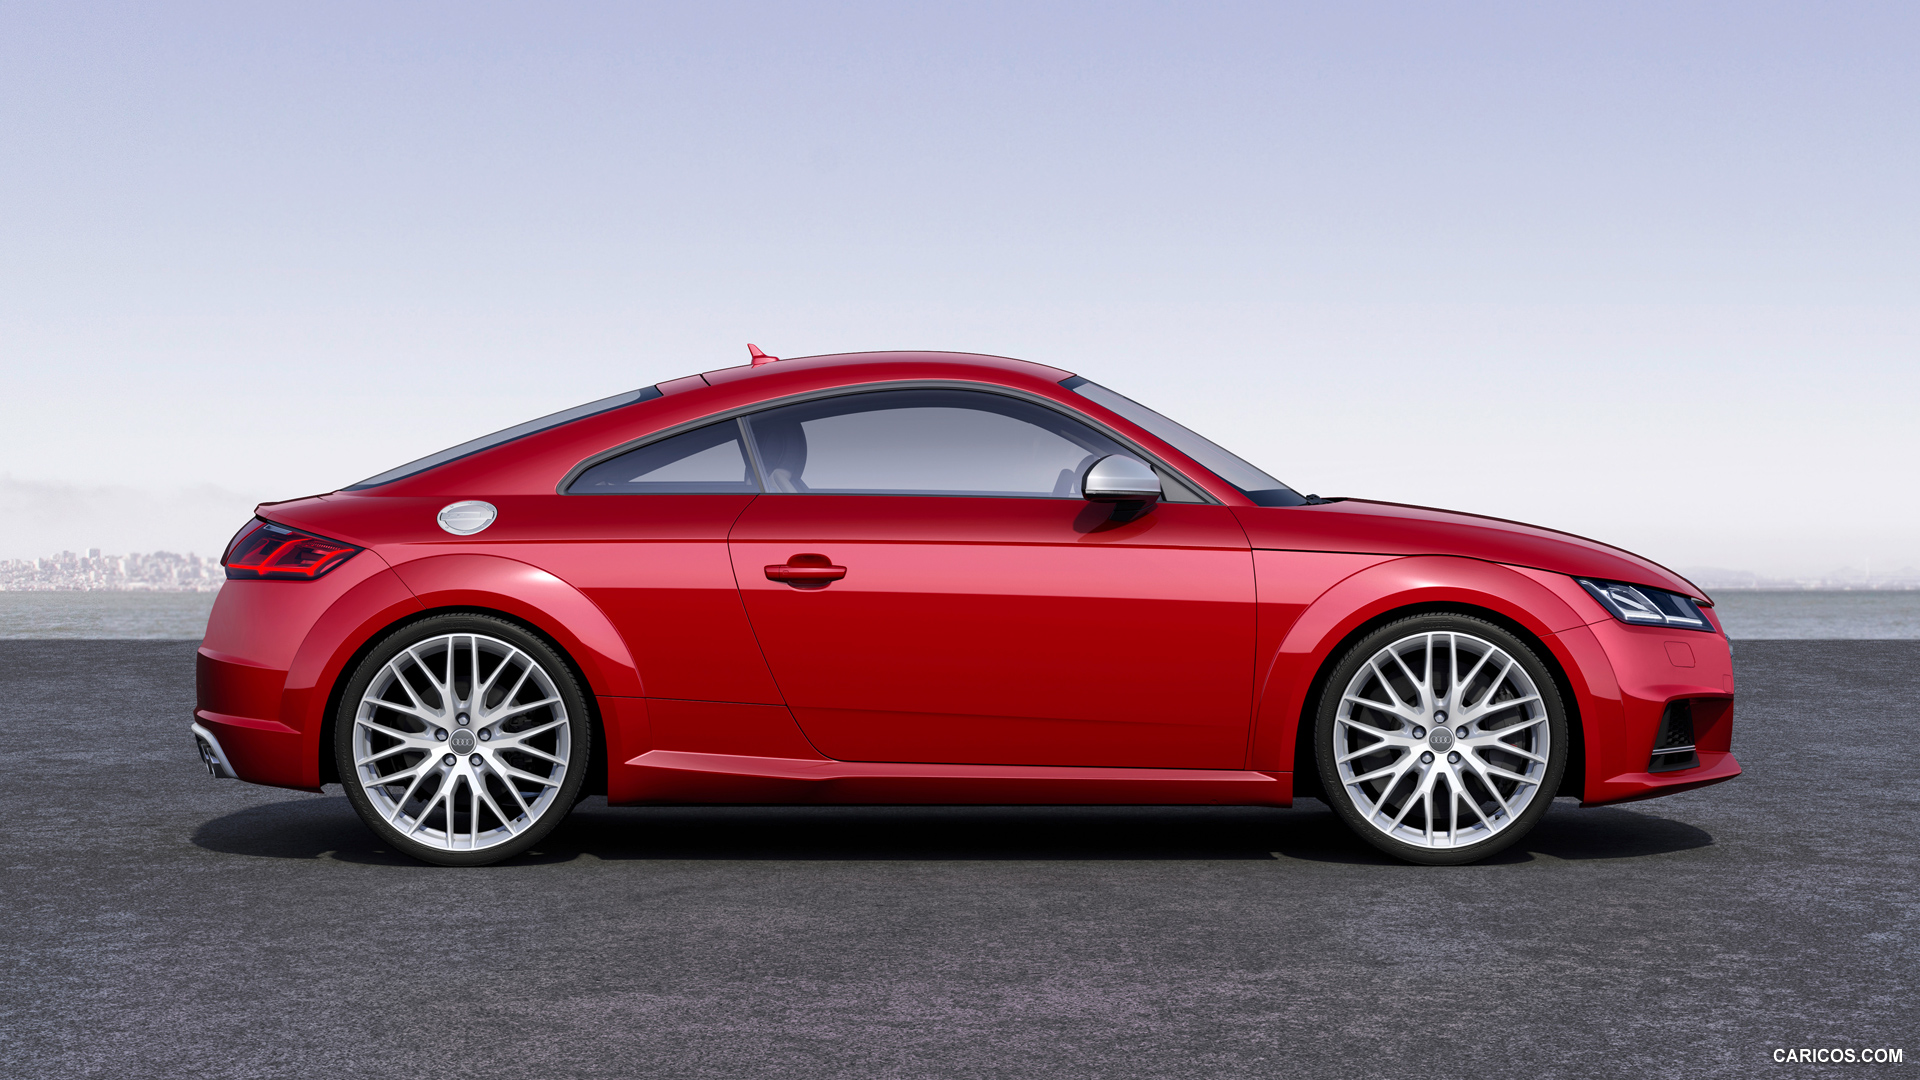 audi tt hardtop red hd desktop wallpapers 4k hd. Black Bedroom Furniture Sets. Home Design Ideas